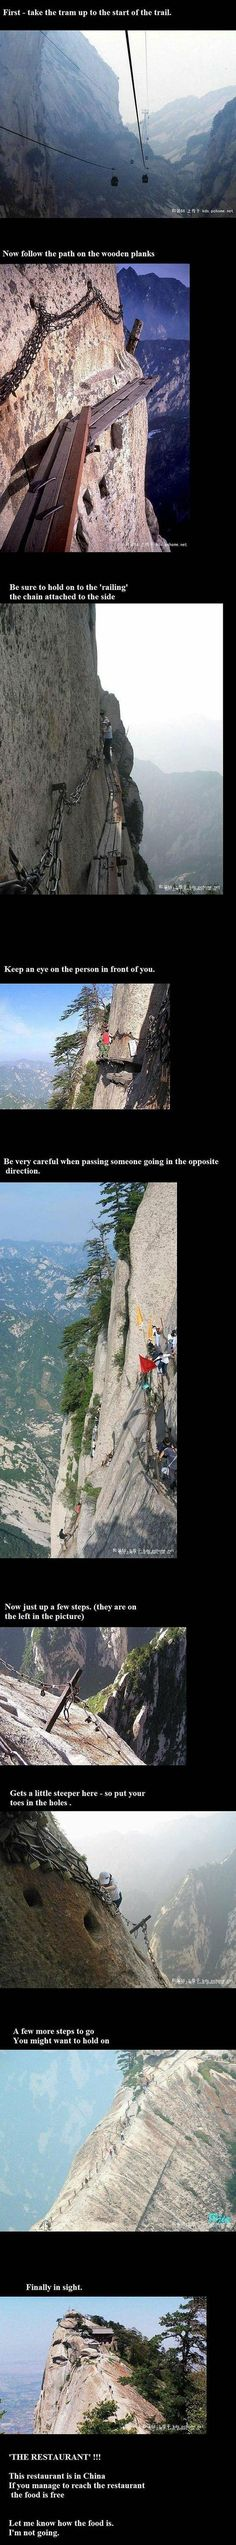 funny-China-restaurant-mountains.jpg